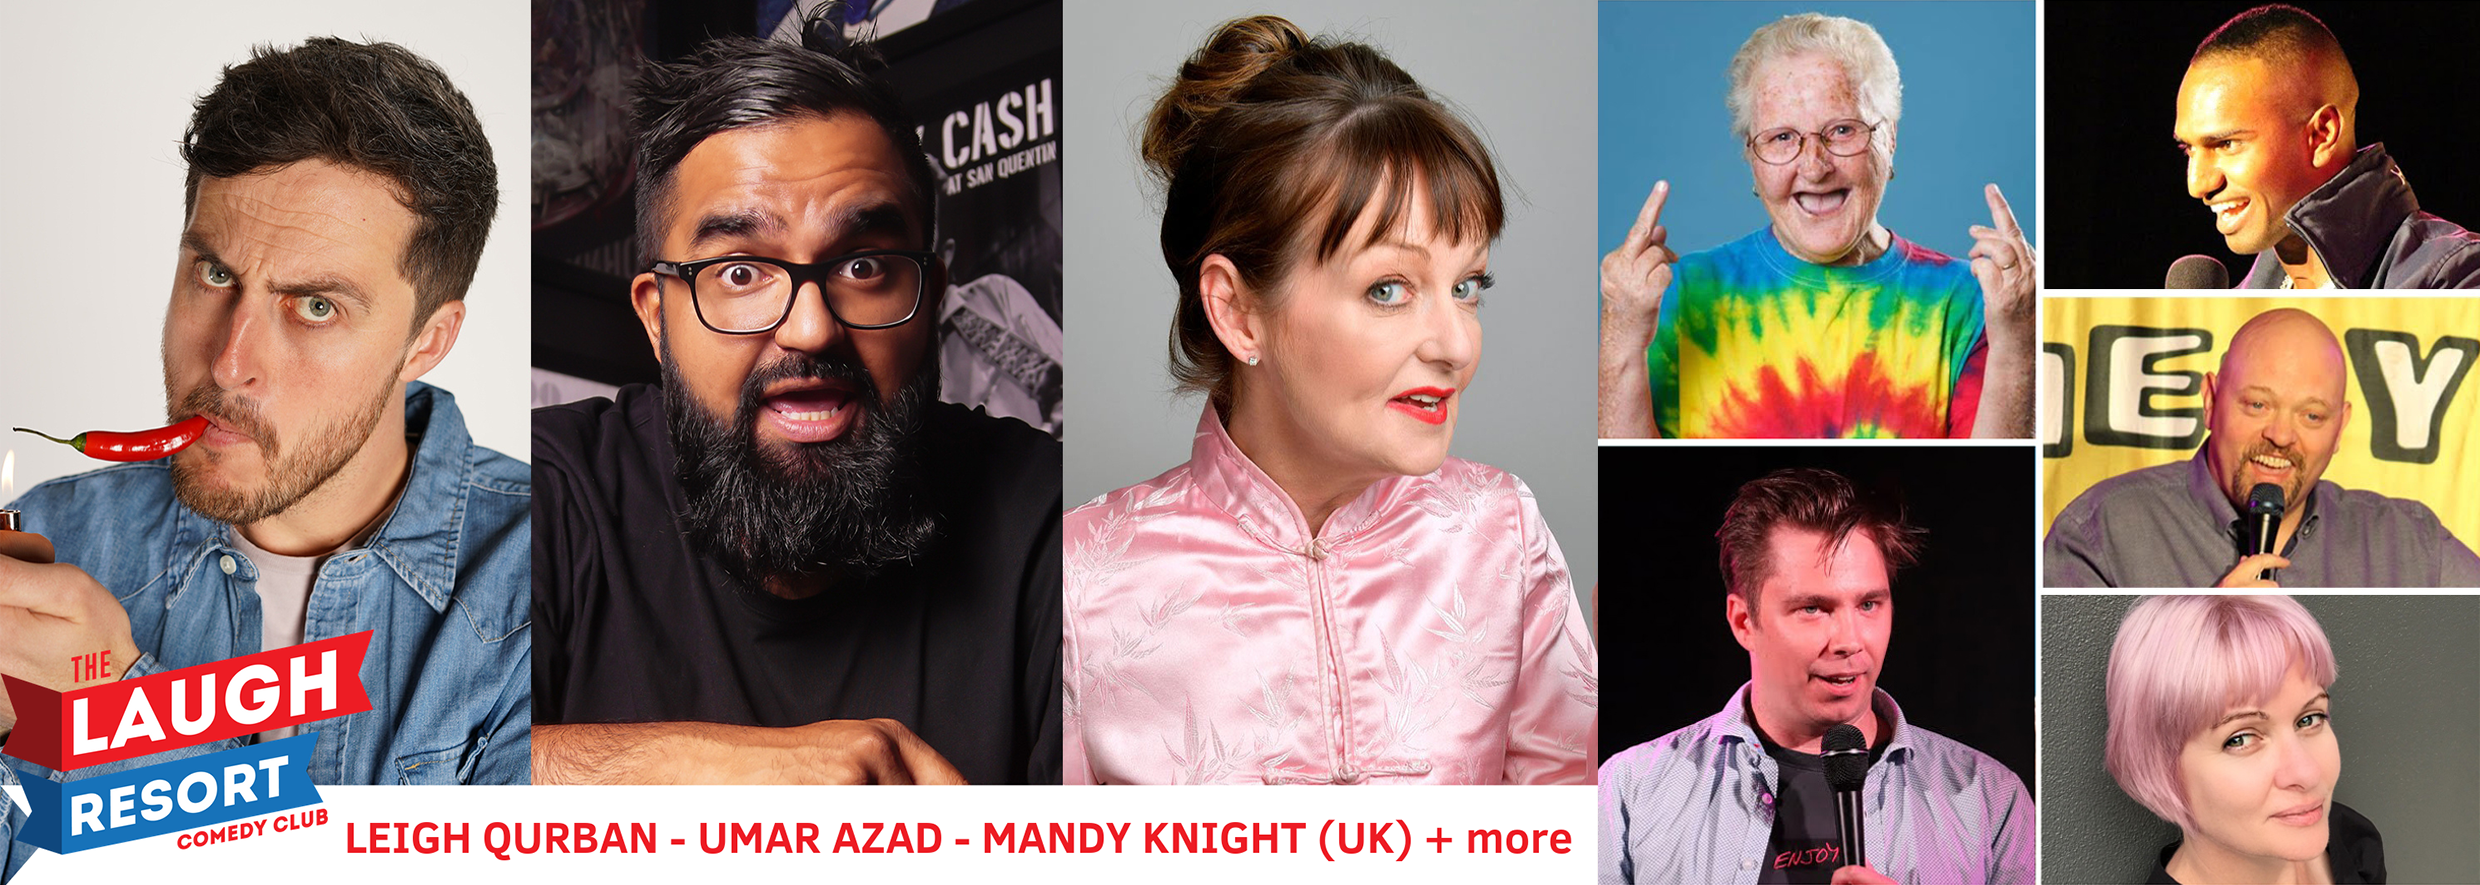 October's show is headed up by the Time Out award winning supreme queen of UK comedy, international sensation  Mandy Knight .  She'll introduce you to some of the best and brightest local and visiting Australian comedy stars on the rise: larrikin 2015 Adelaide Comedian of the Year  Leigh Qurban ; FRINGE WORLD 2019 Best Comedy WA award winner  Umar Azad ; 'Gran in a Van'  Leonie Clarke ; legal eagle  Corey White ; RAW Comedy state finalists  Millennium Marrion  and  John Pinder ; and comedy blogging modern mum  Deanna Corbett .  If you needed another reason to book (besides our 3rd-Wednesday-of-the-month-shows often selling out), every online ticket puts you in the draw to  WIN a Gage Roads Prize Pack  including $50 food+drink voucher from our host venue The Shoe.  Nab your tickets from  Eventbrite  or  Facebook . Early birds $10 (SOLD OUT) / Standard $15 / Concession $12 Door sales only if not sold out prior (from 7:30pm).  Wednesday 16 October, 8pm The Shoe Bar & Cafe, Yagan Square PERTH